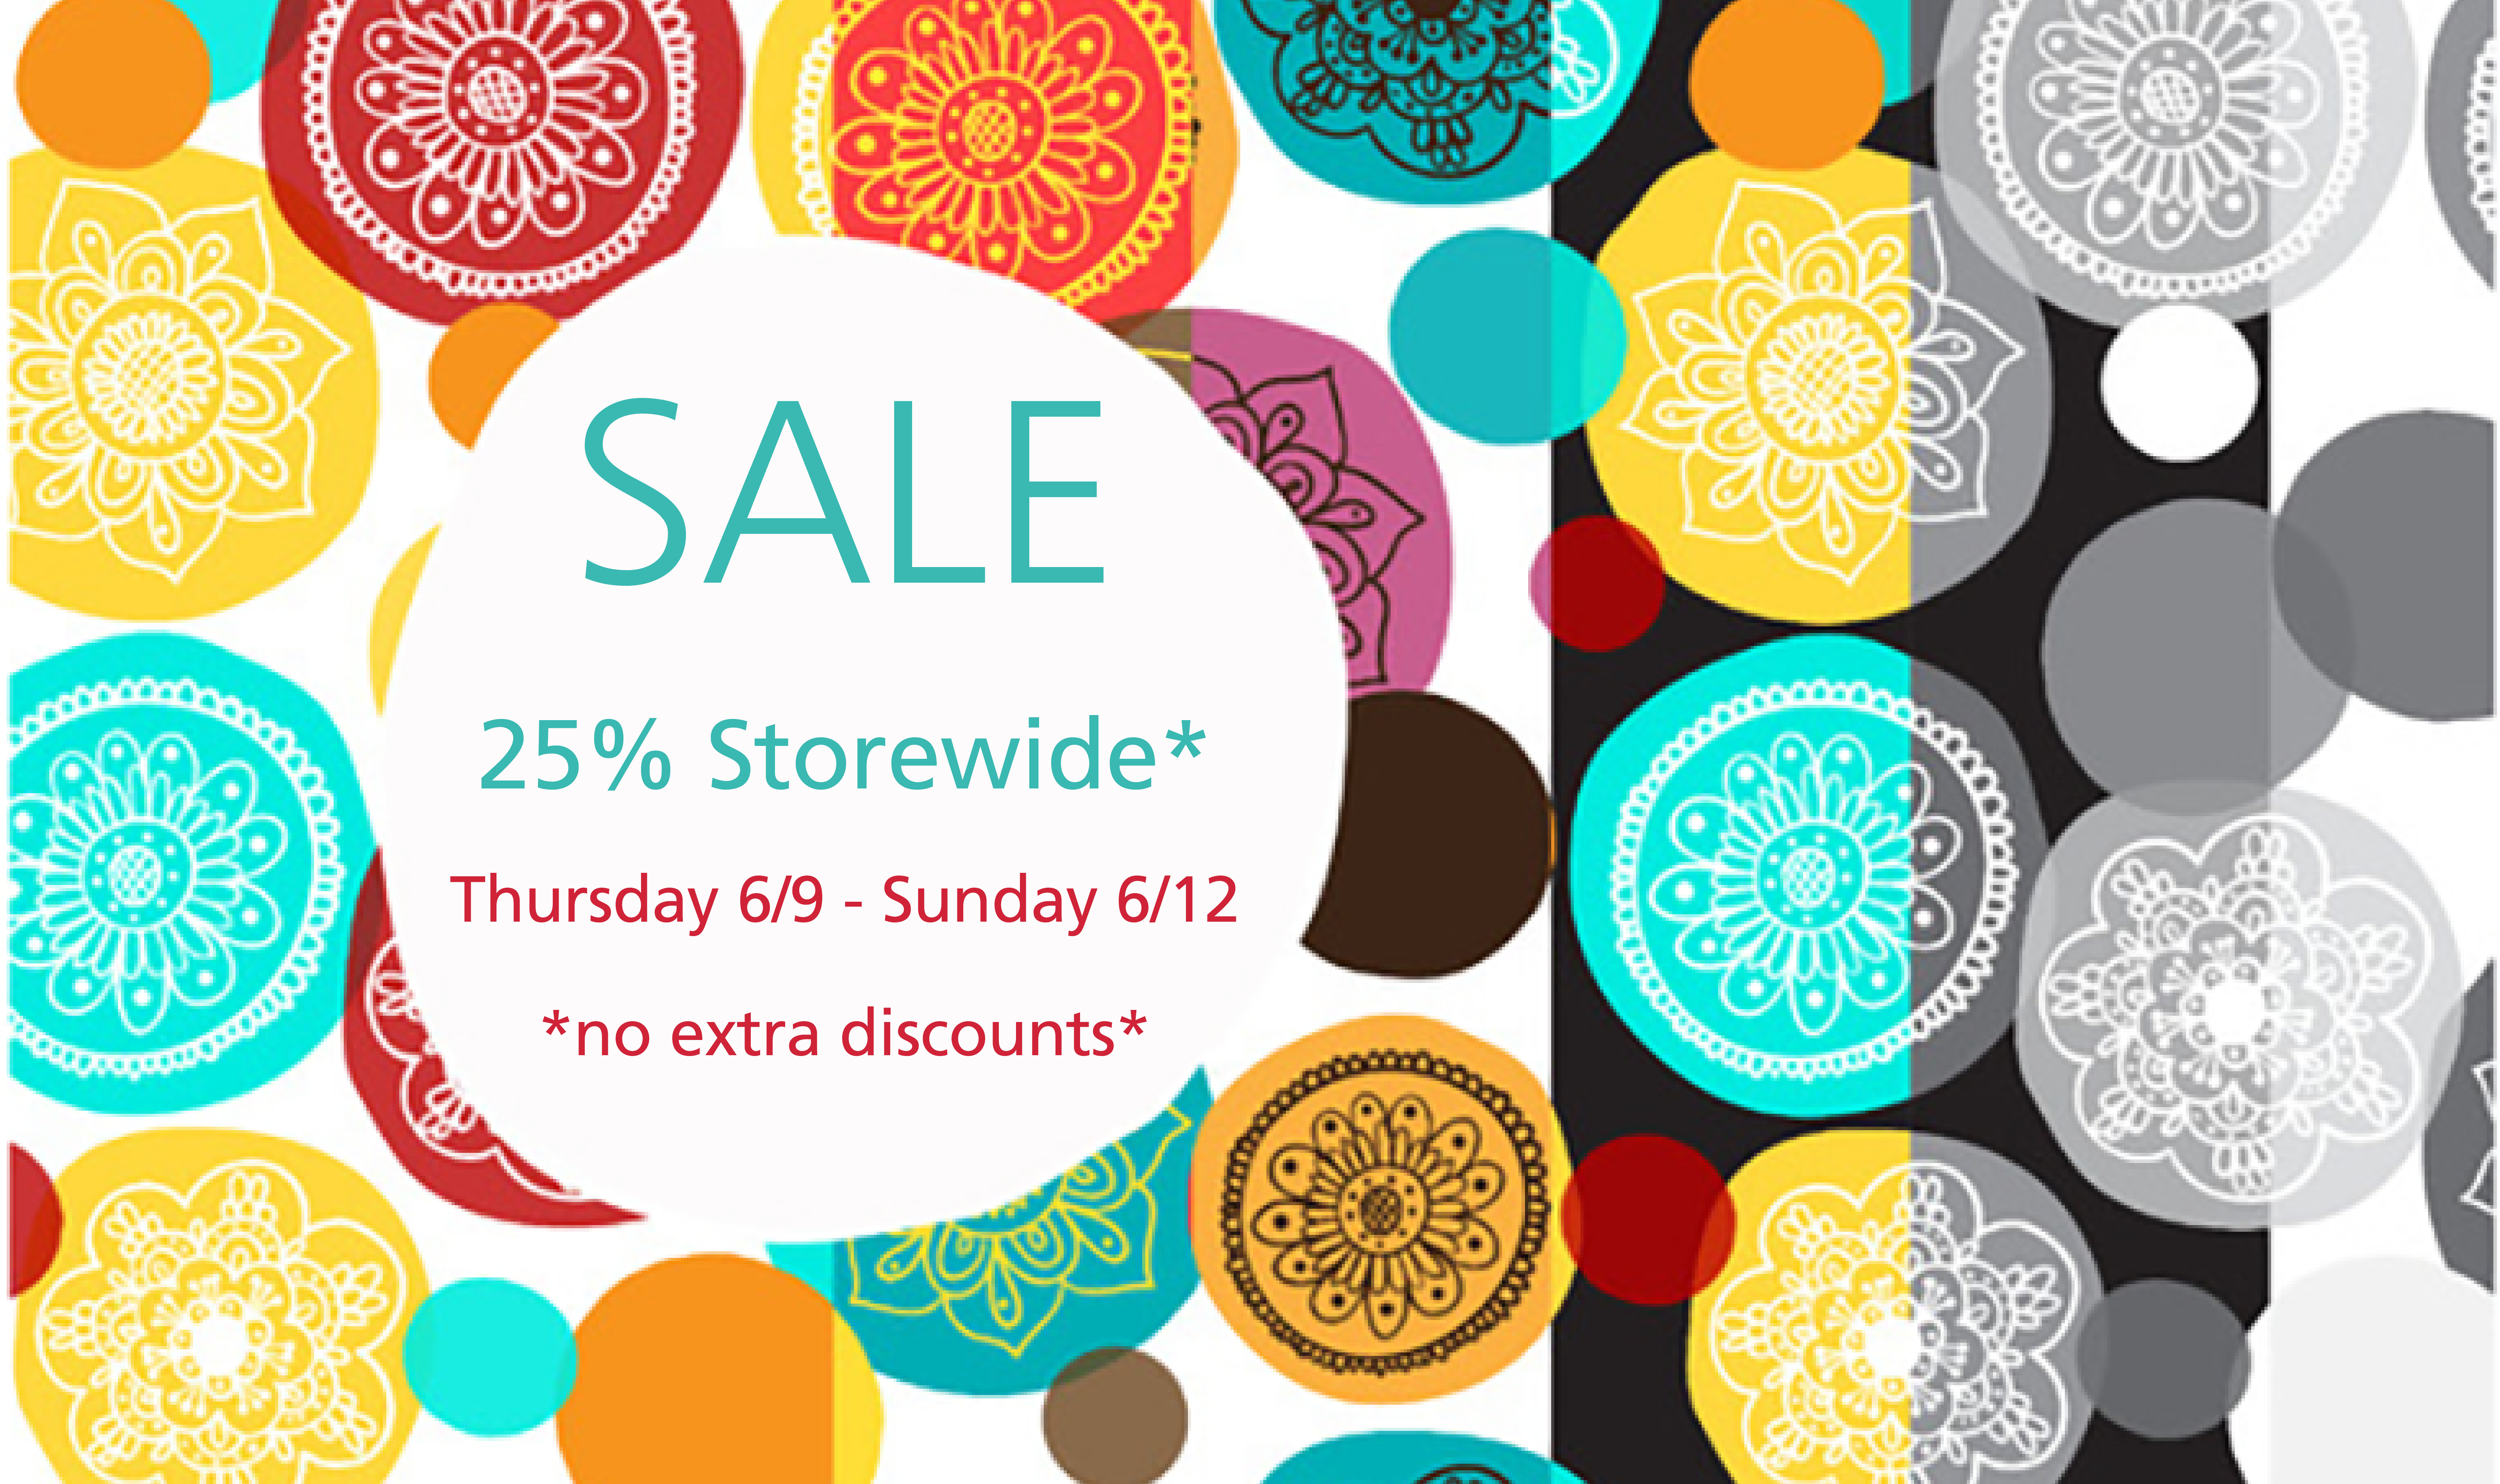 Gallery Store sale